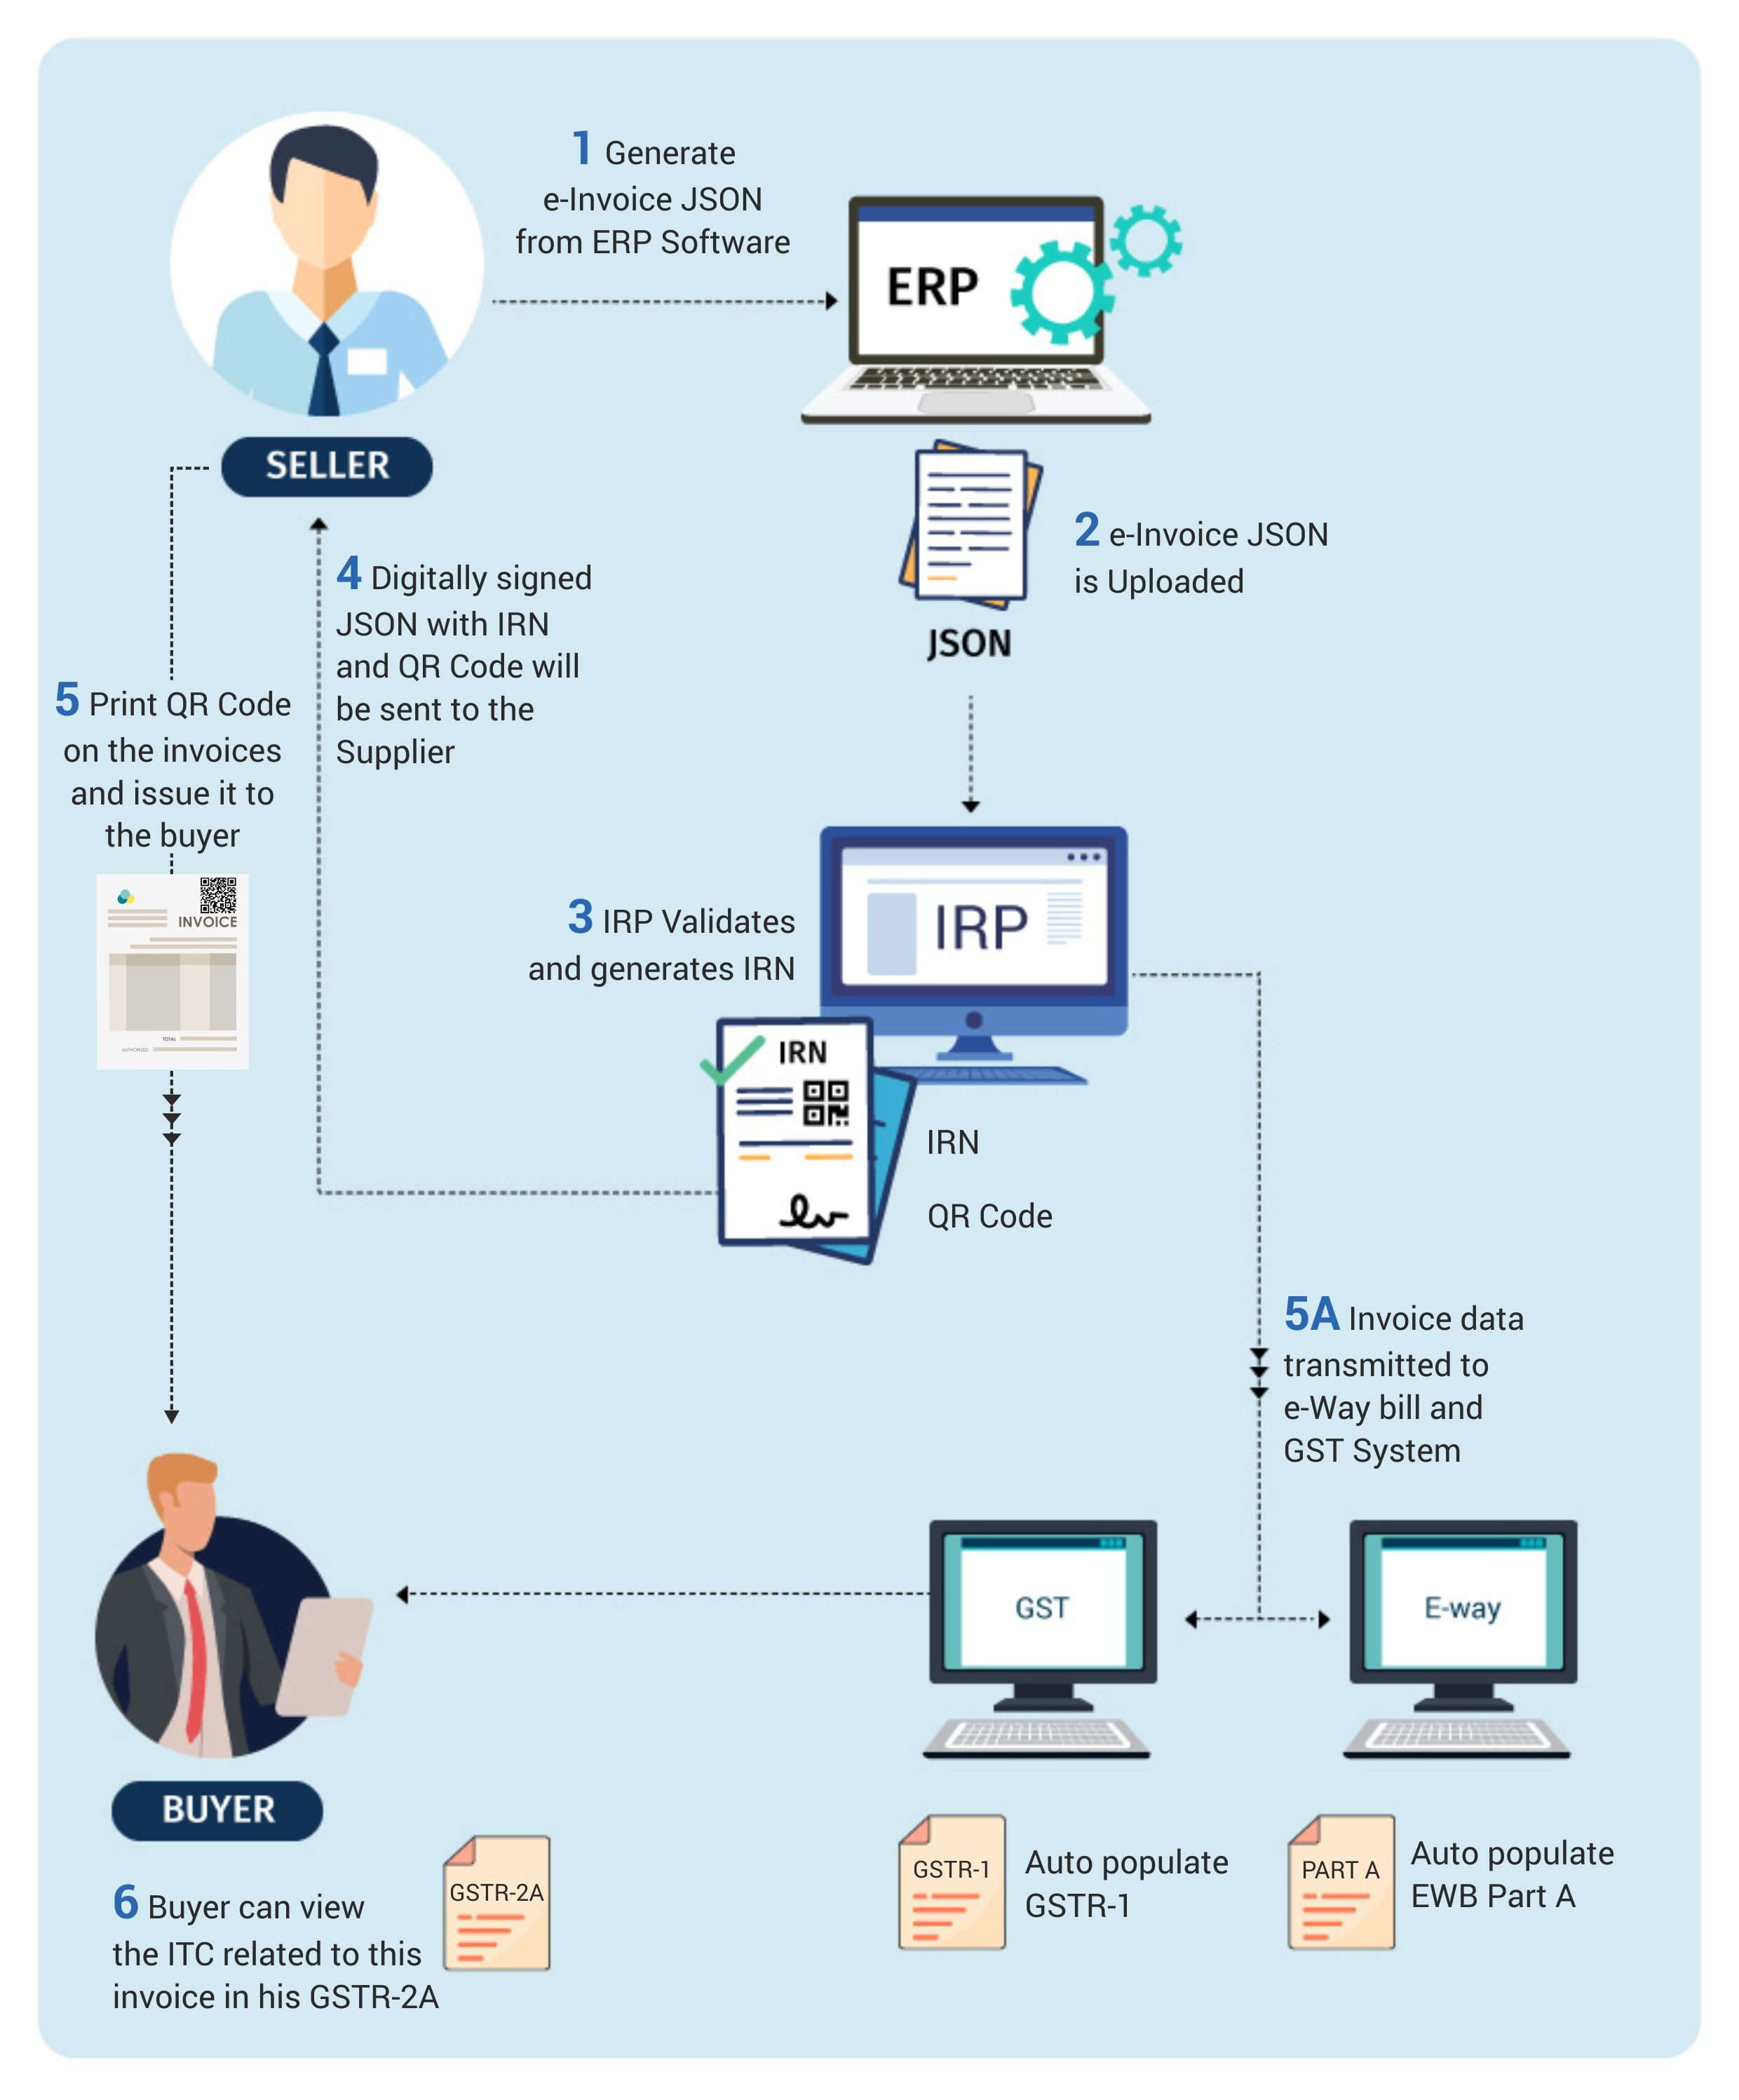 e-invoice system workflow